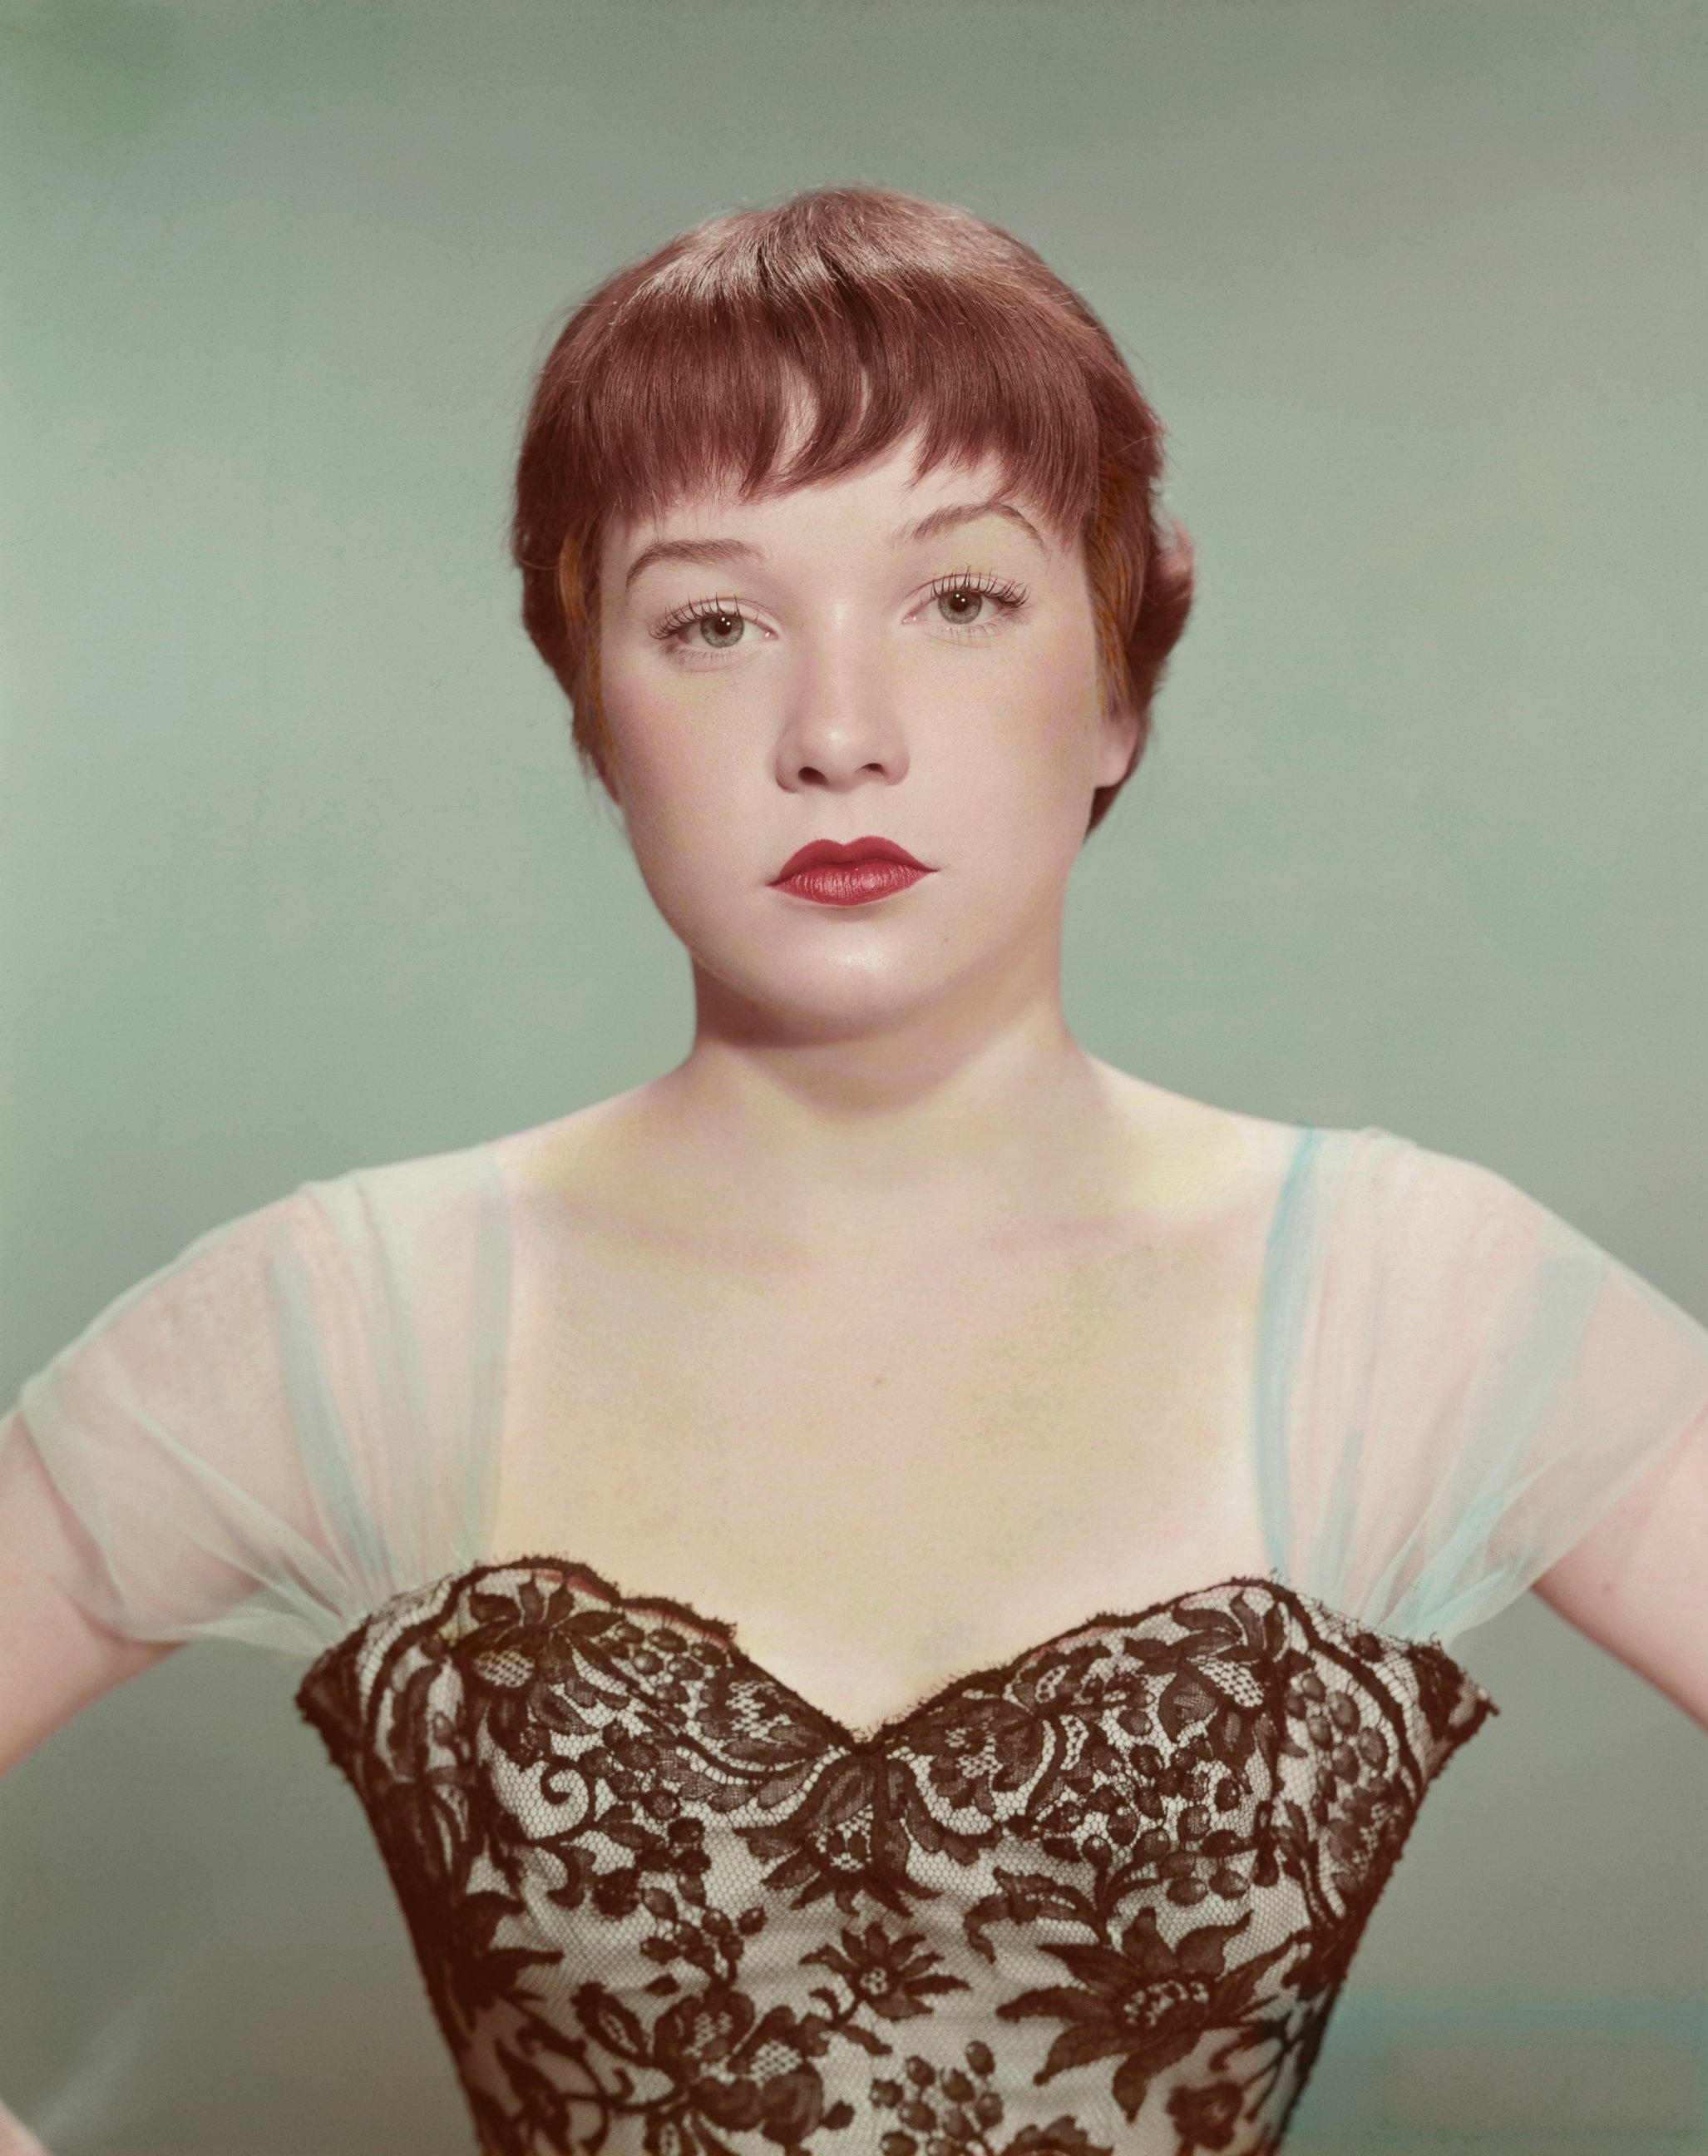 Shirley MacLaine Photos and Images - ABC News